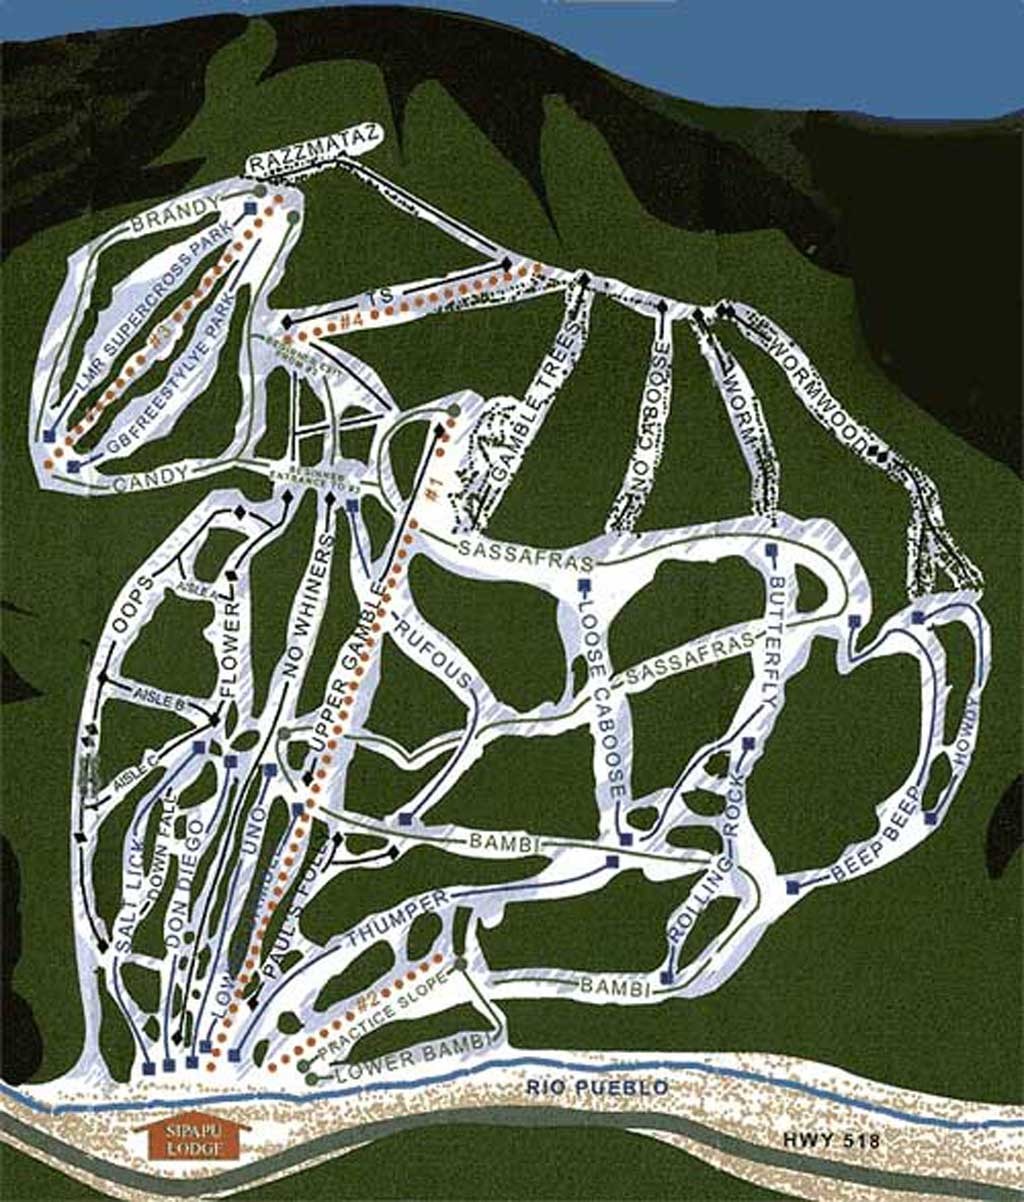 Sipapu Ski and Summer Resort Piste / Trail Map